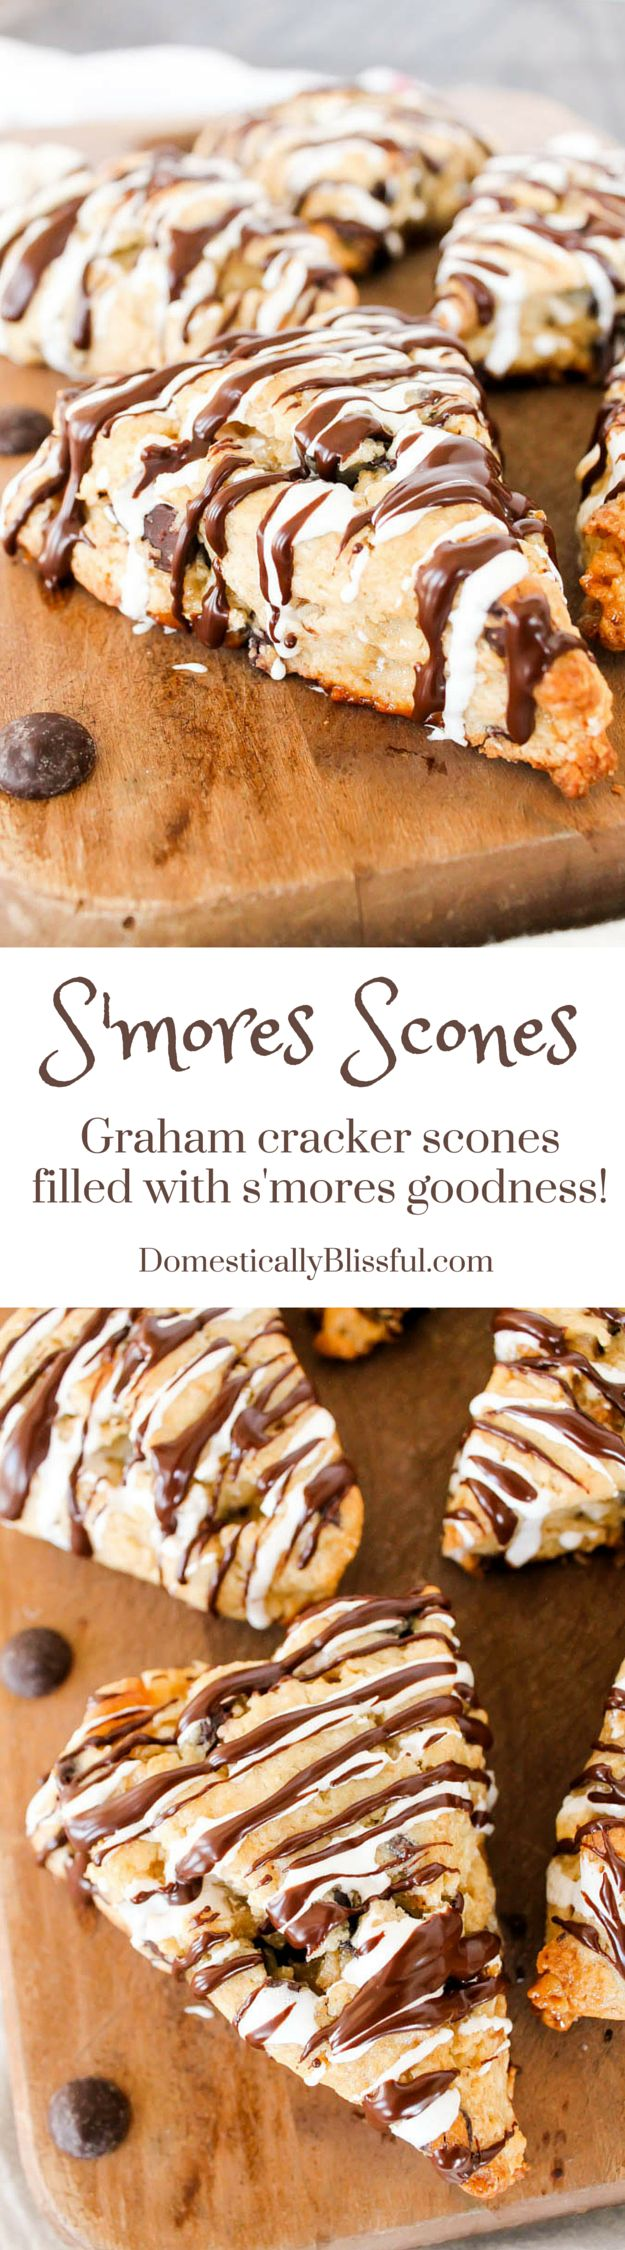 These aren't your average S'mores Scones! These are graham cracker scones are filled with melty chocolate & pockets of sweet marshmallows & topped with a drizzle of chocolate & marshmallow icing!